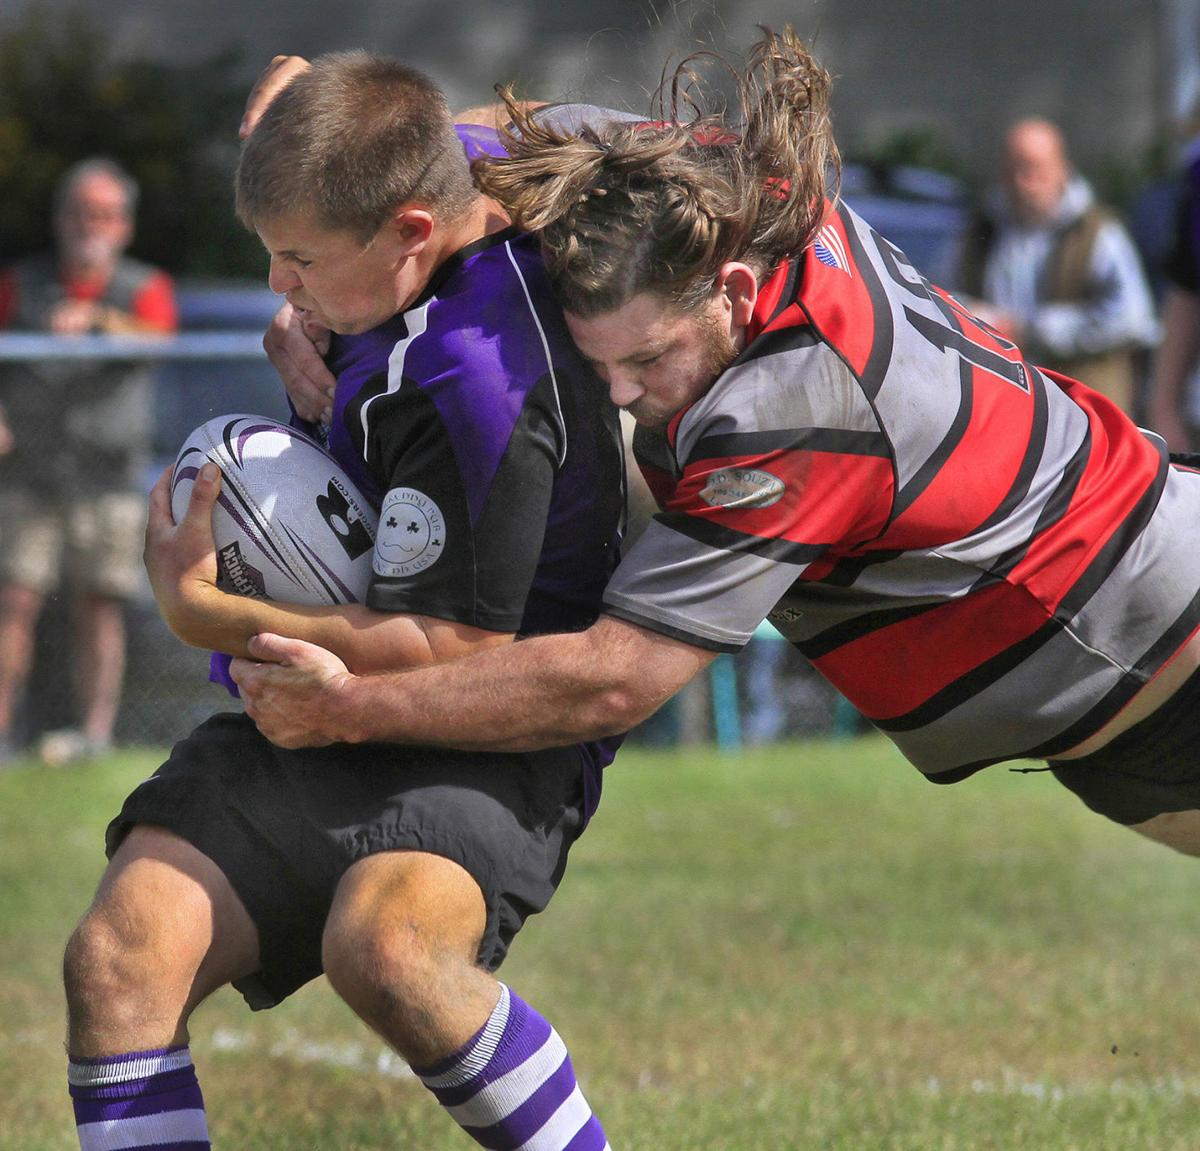 Wolfpack rugby club making its mark in Keene | Local Sports ... on